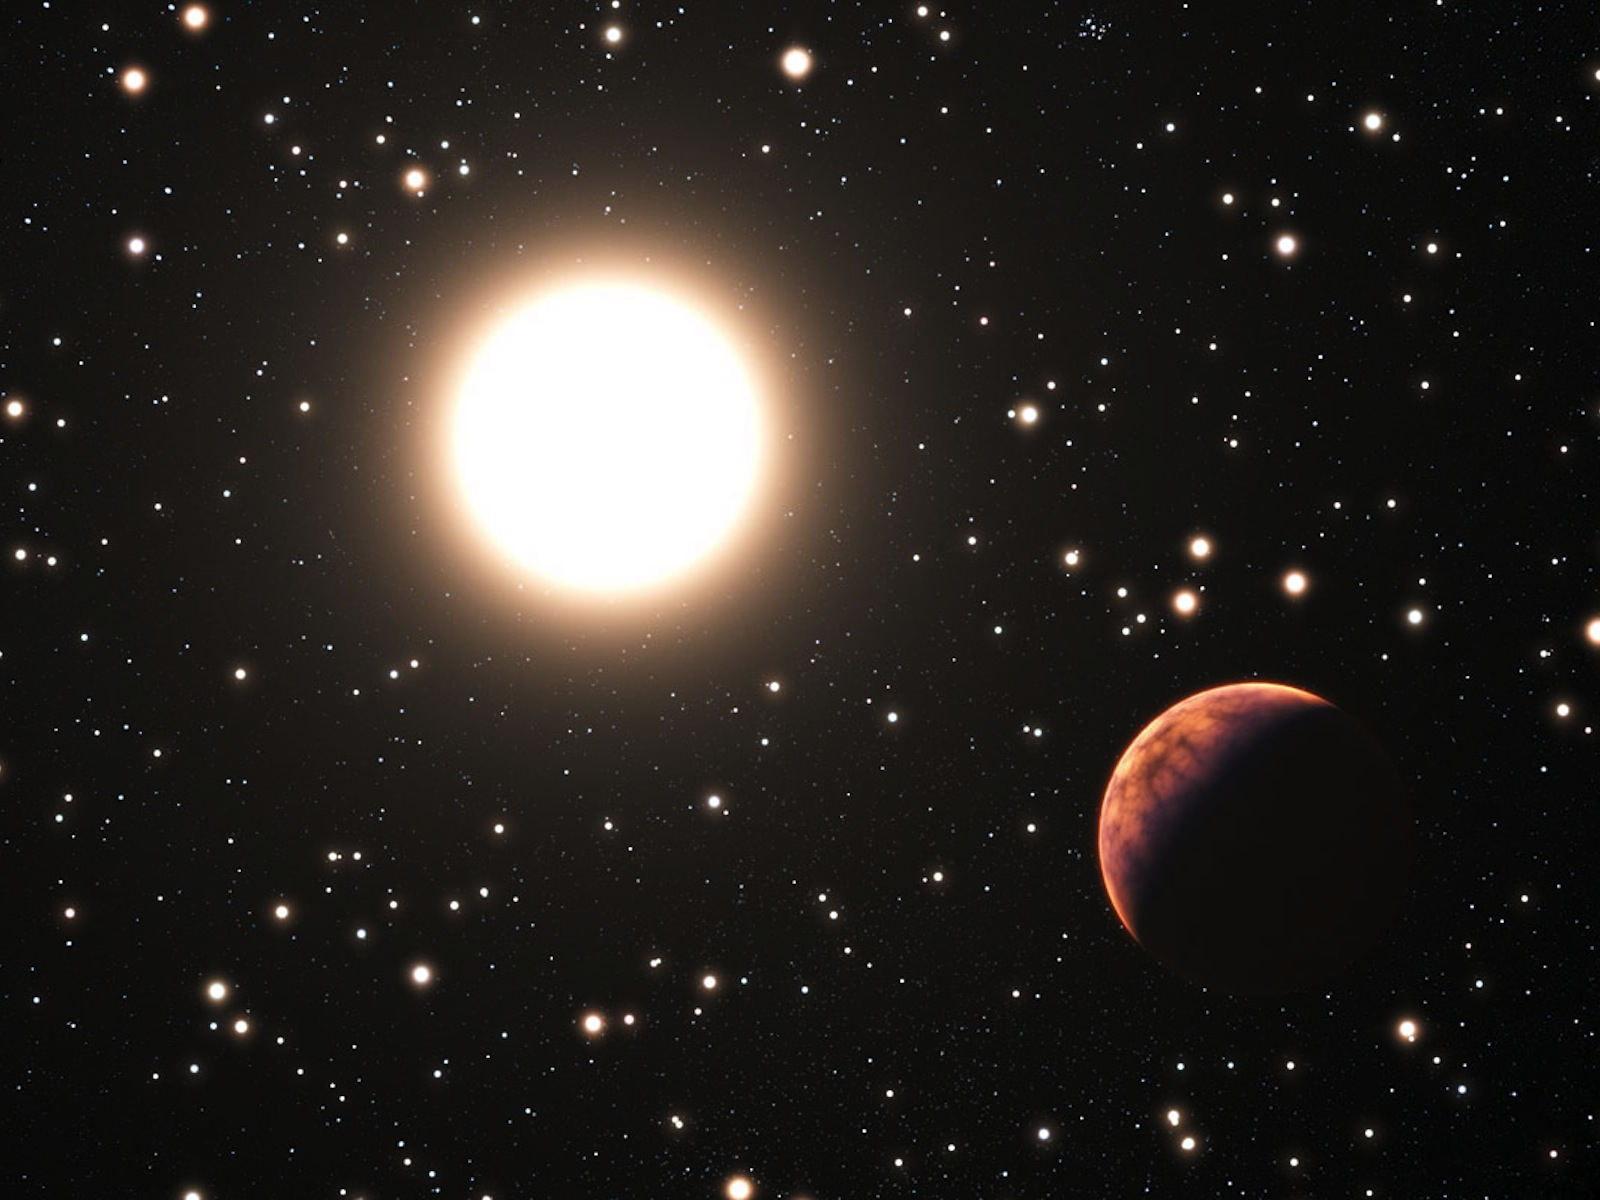 New Planet Discovered in Messier 67 Illustration